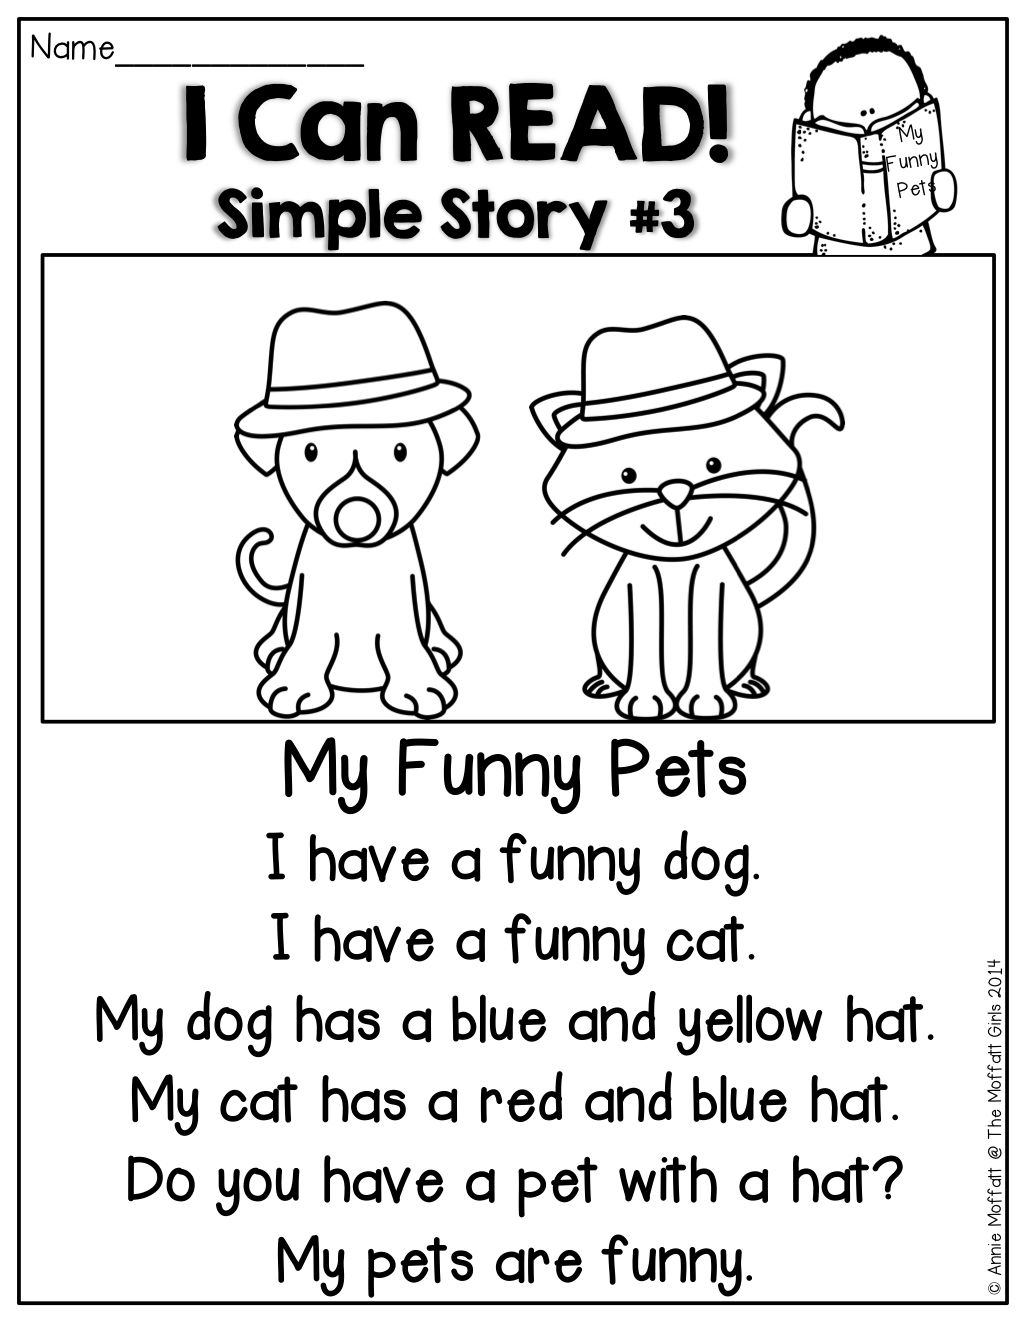 I Can READ Simple Stories! Simple stories made up of SIGH